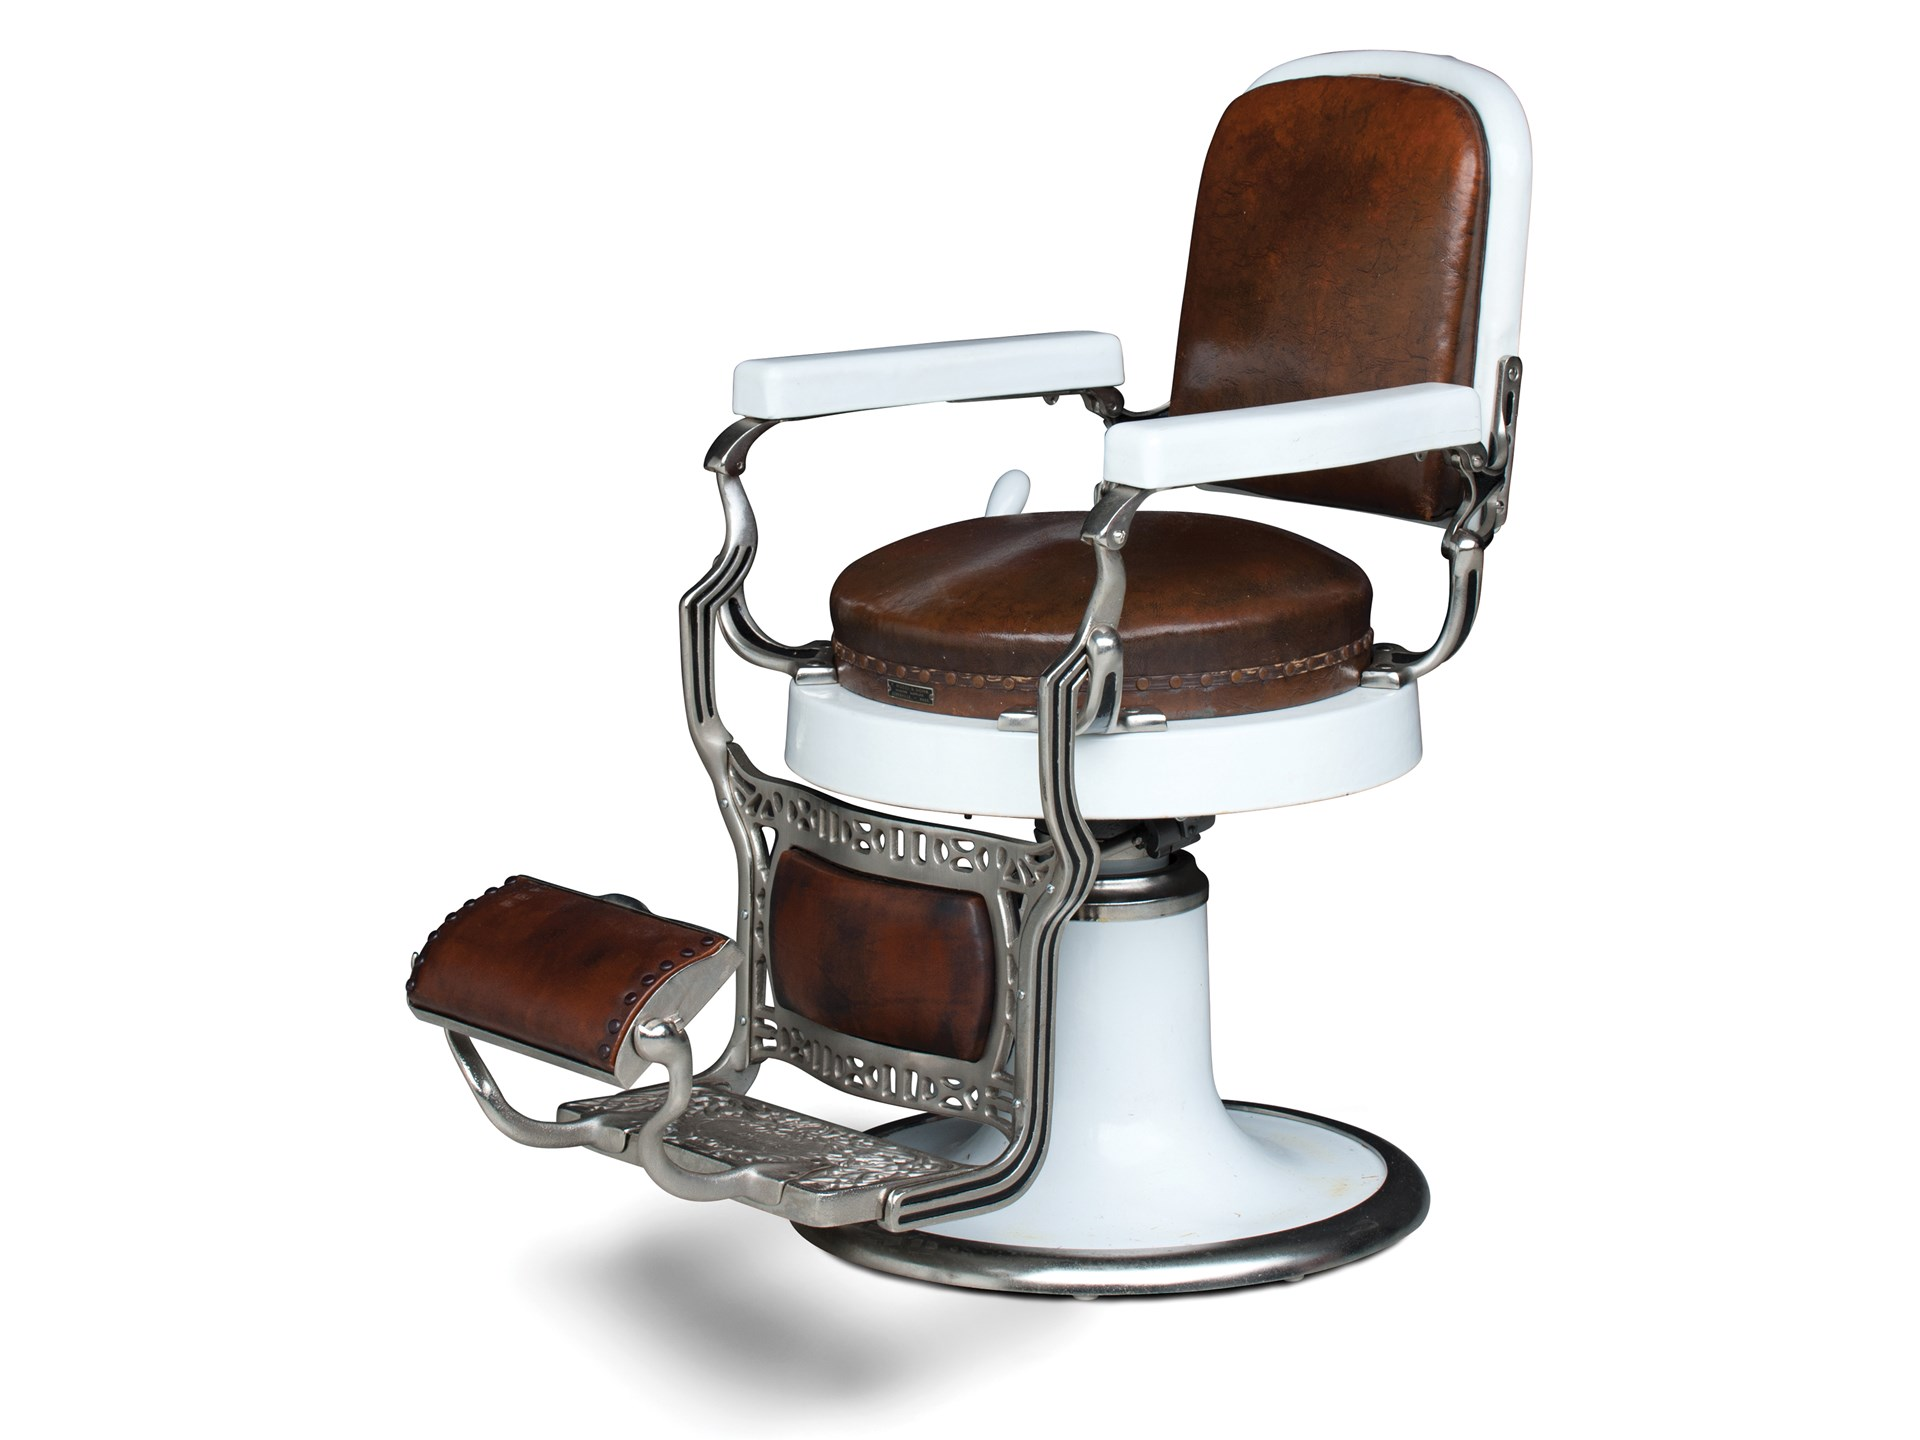 Koken Barber Chairs Rm Sotheby S Koken Barber Shop Chair The Dingman Collection